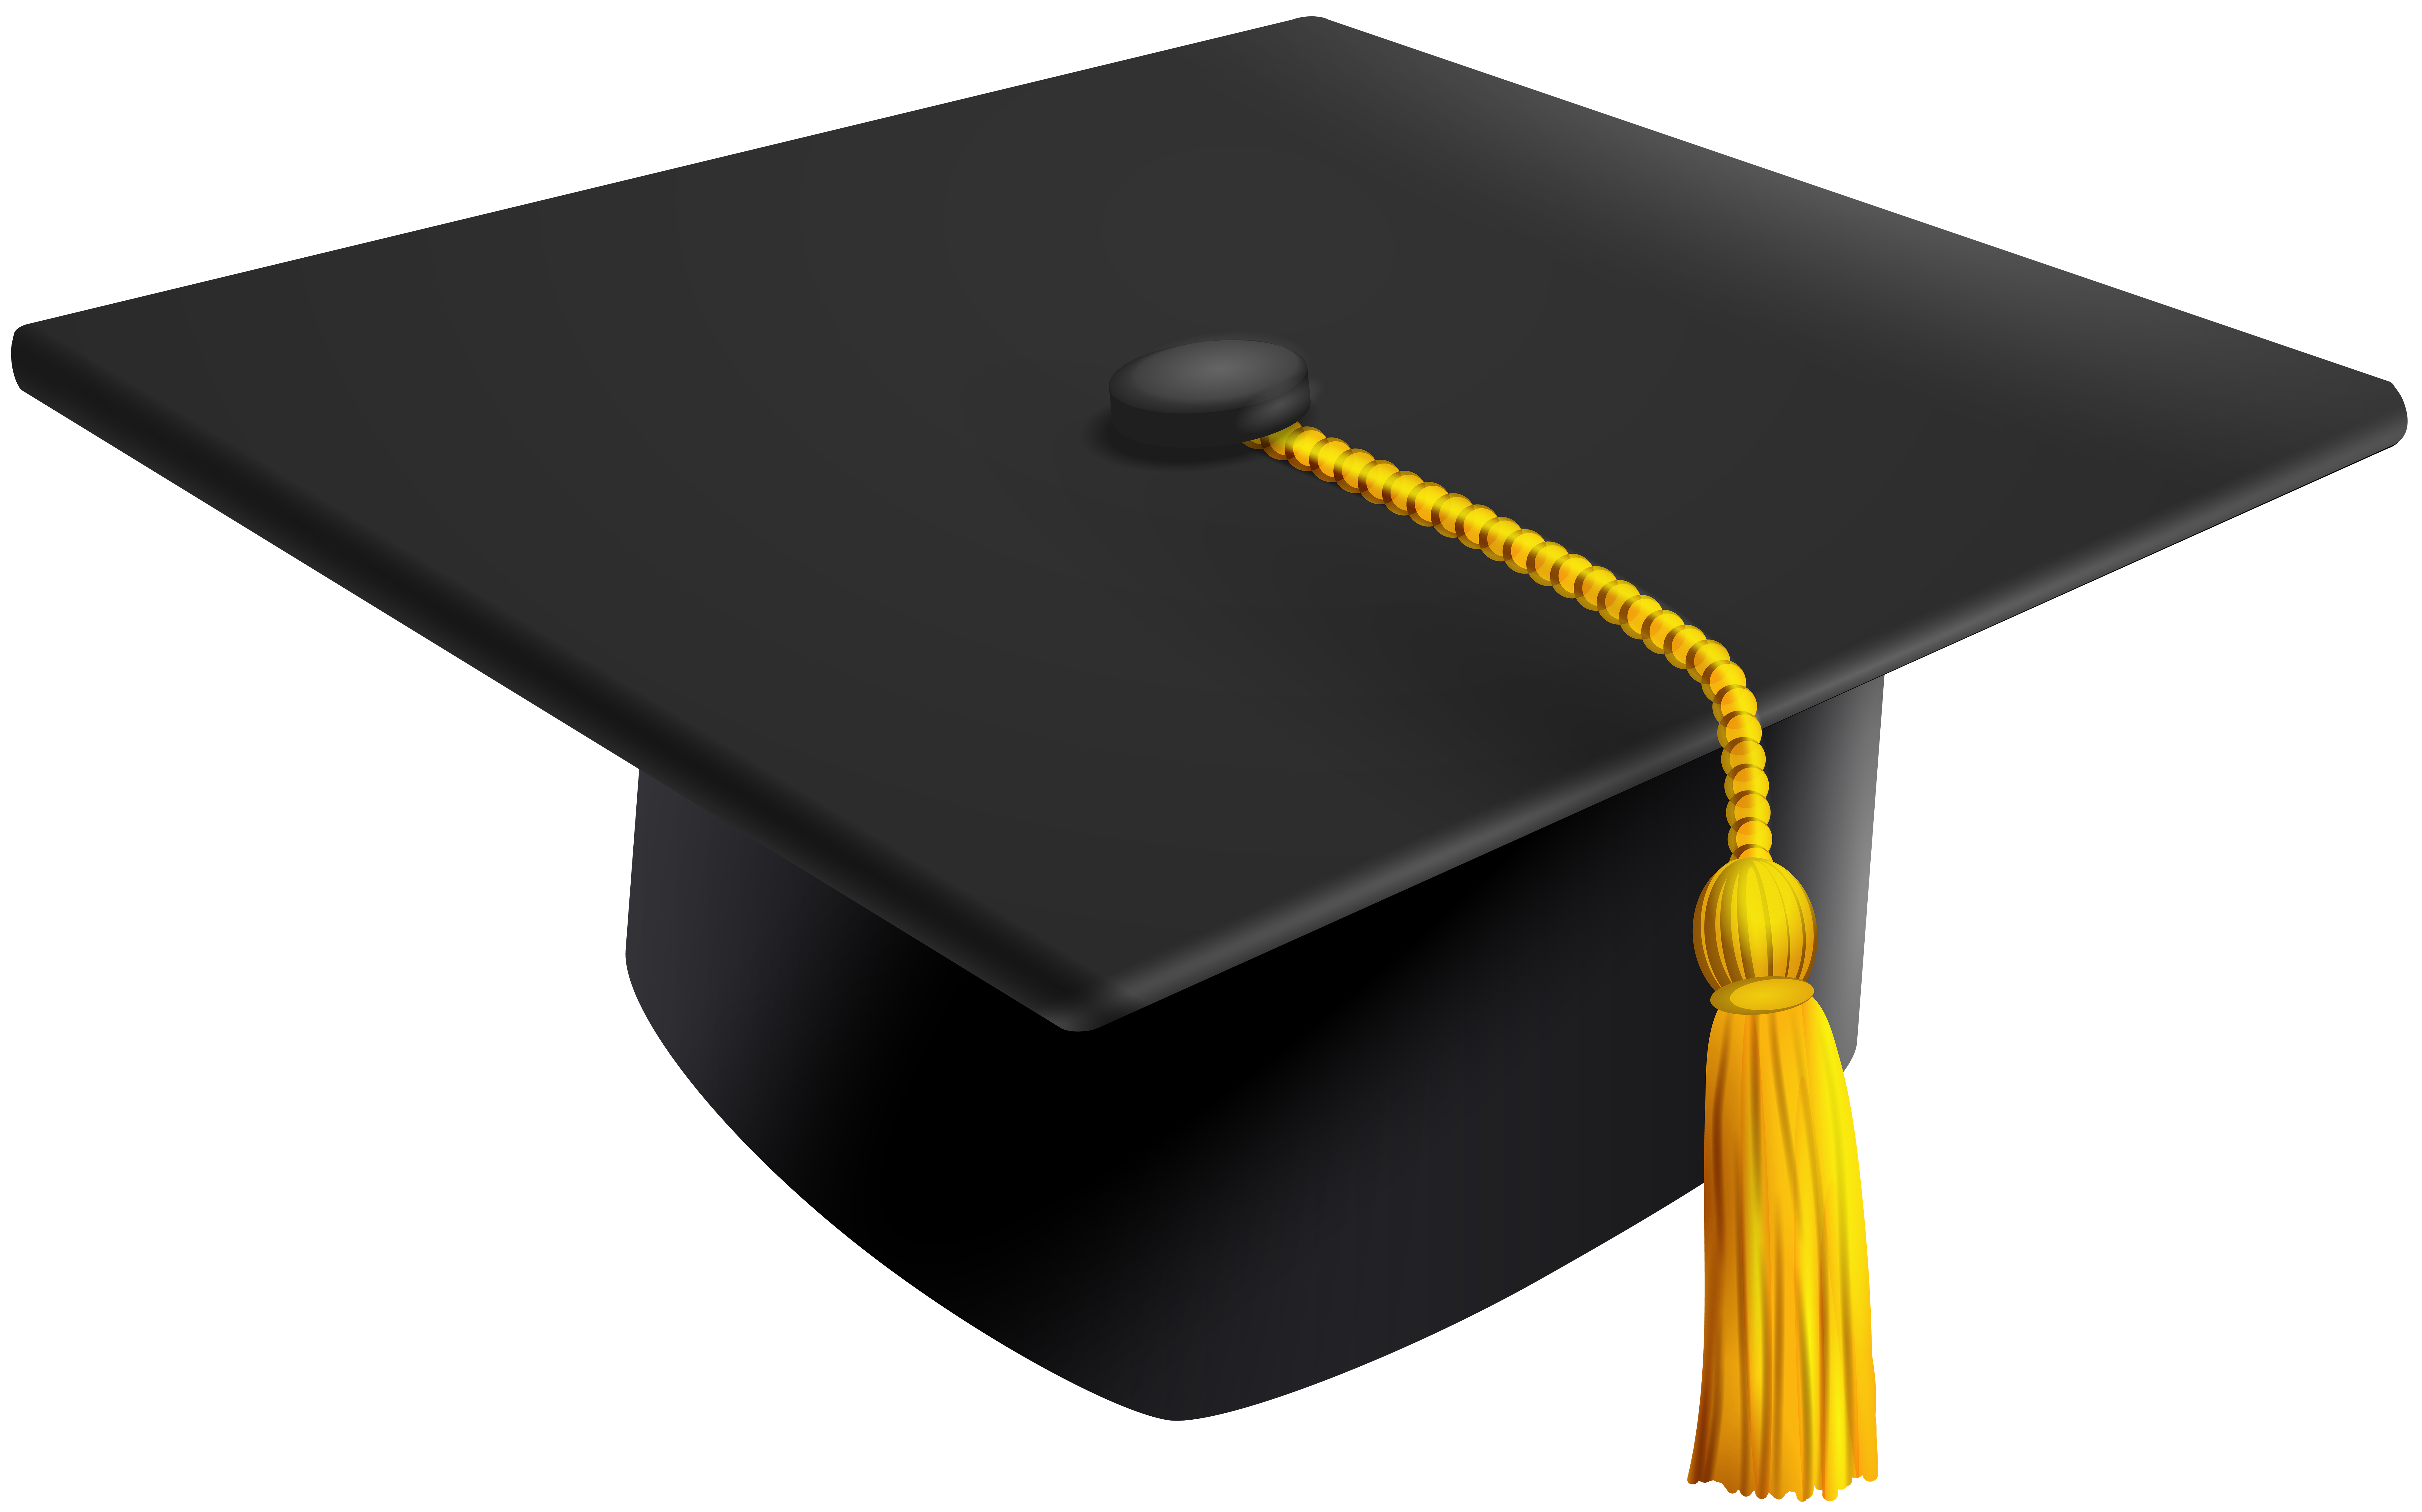 Graduation Hat Transparent Clip Art Image Gallery Yopriceville High Quality Images And Transparent Png Free Graduation Clip Art Graduation Hat Art Images